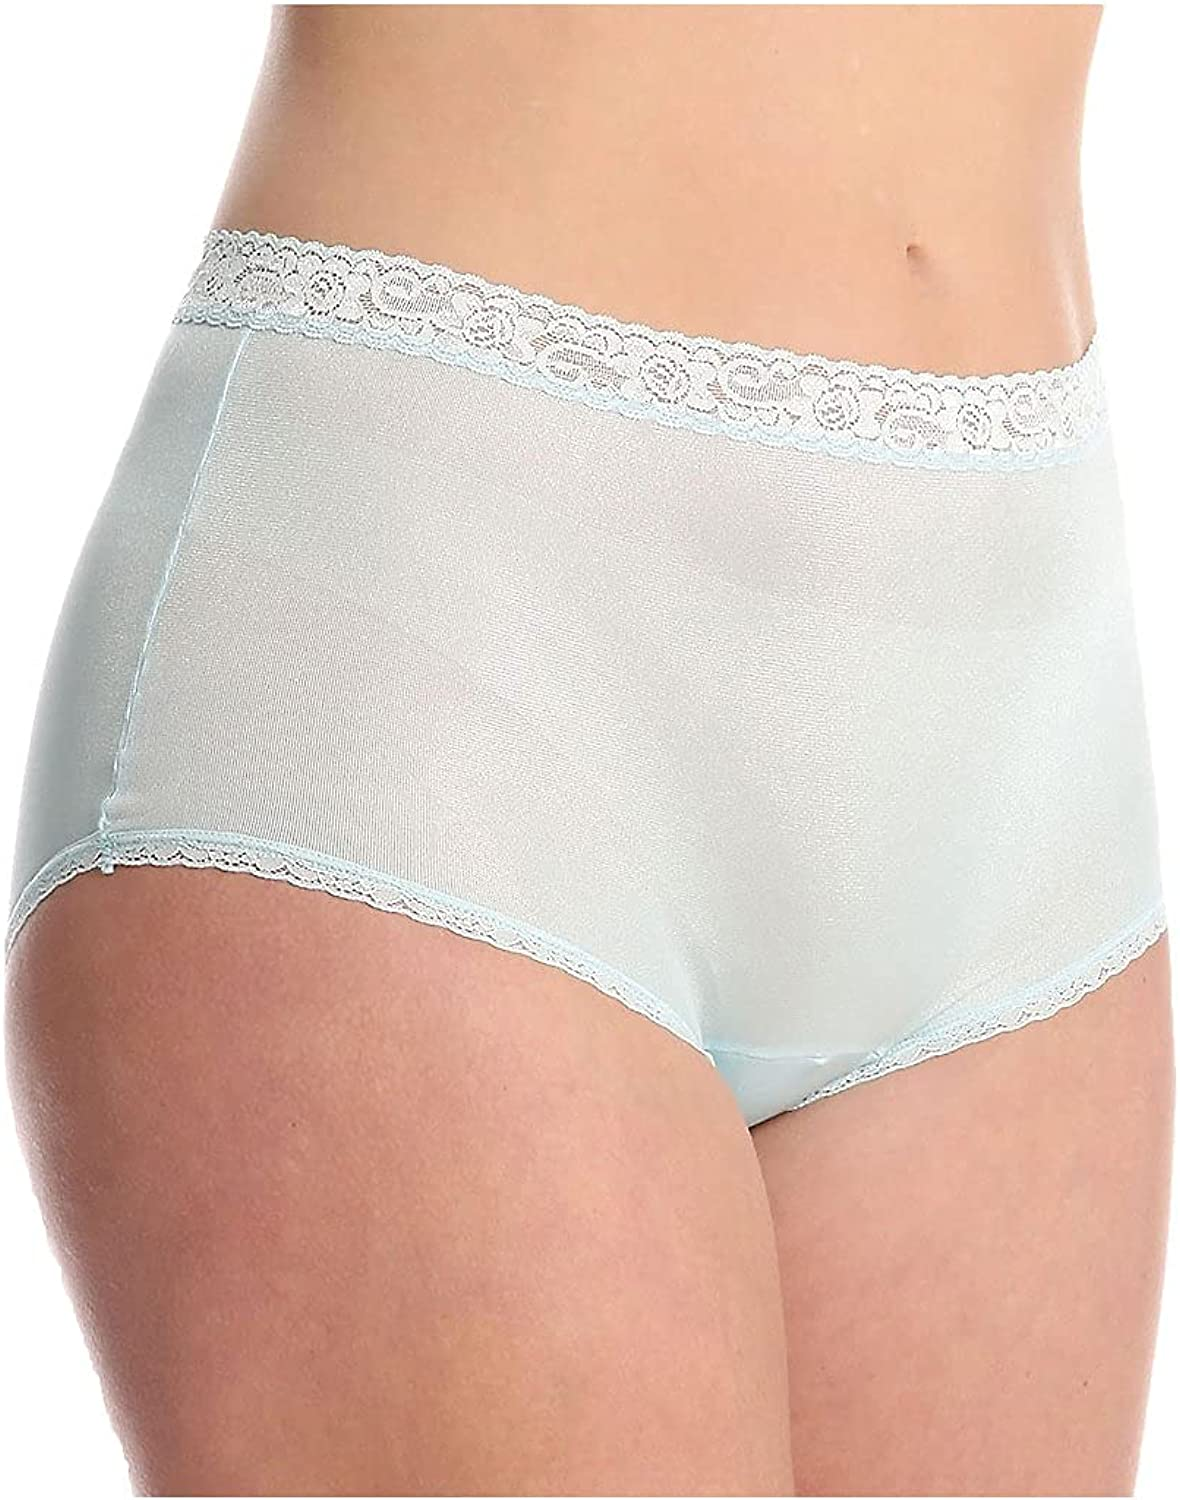 Lorraine Women's Nylon Full New item Brief with Lace Panty Genuine Free Shipping Trim